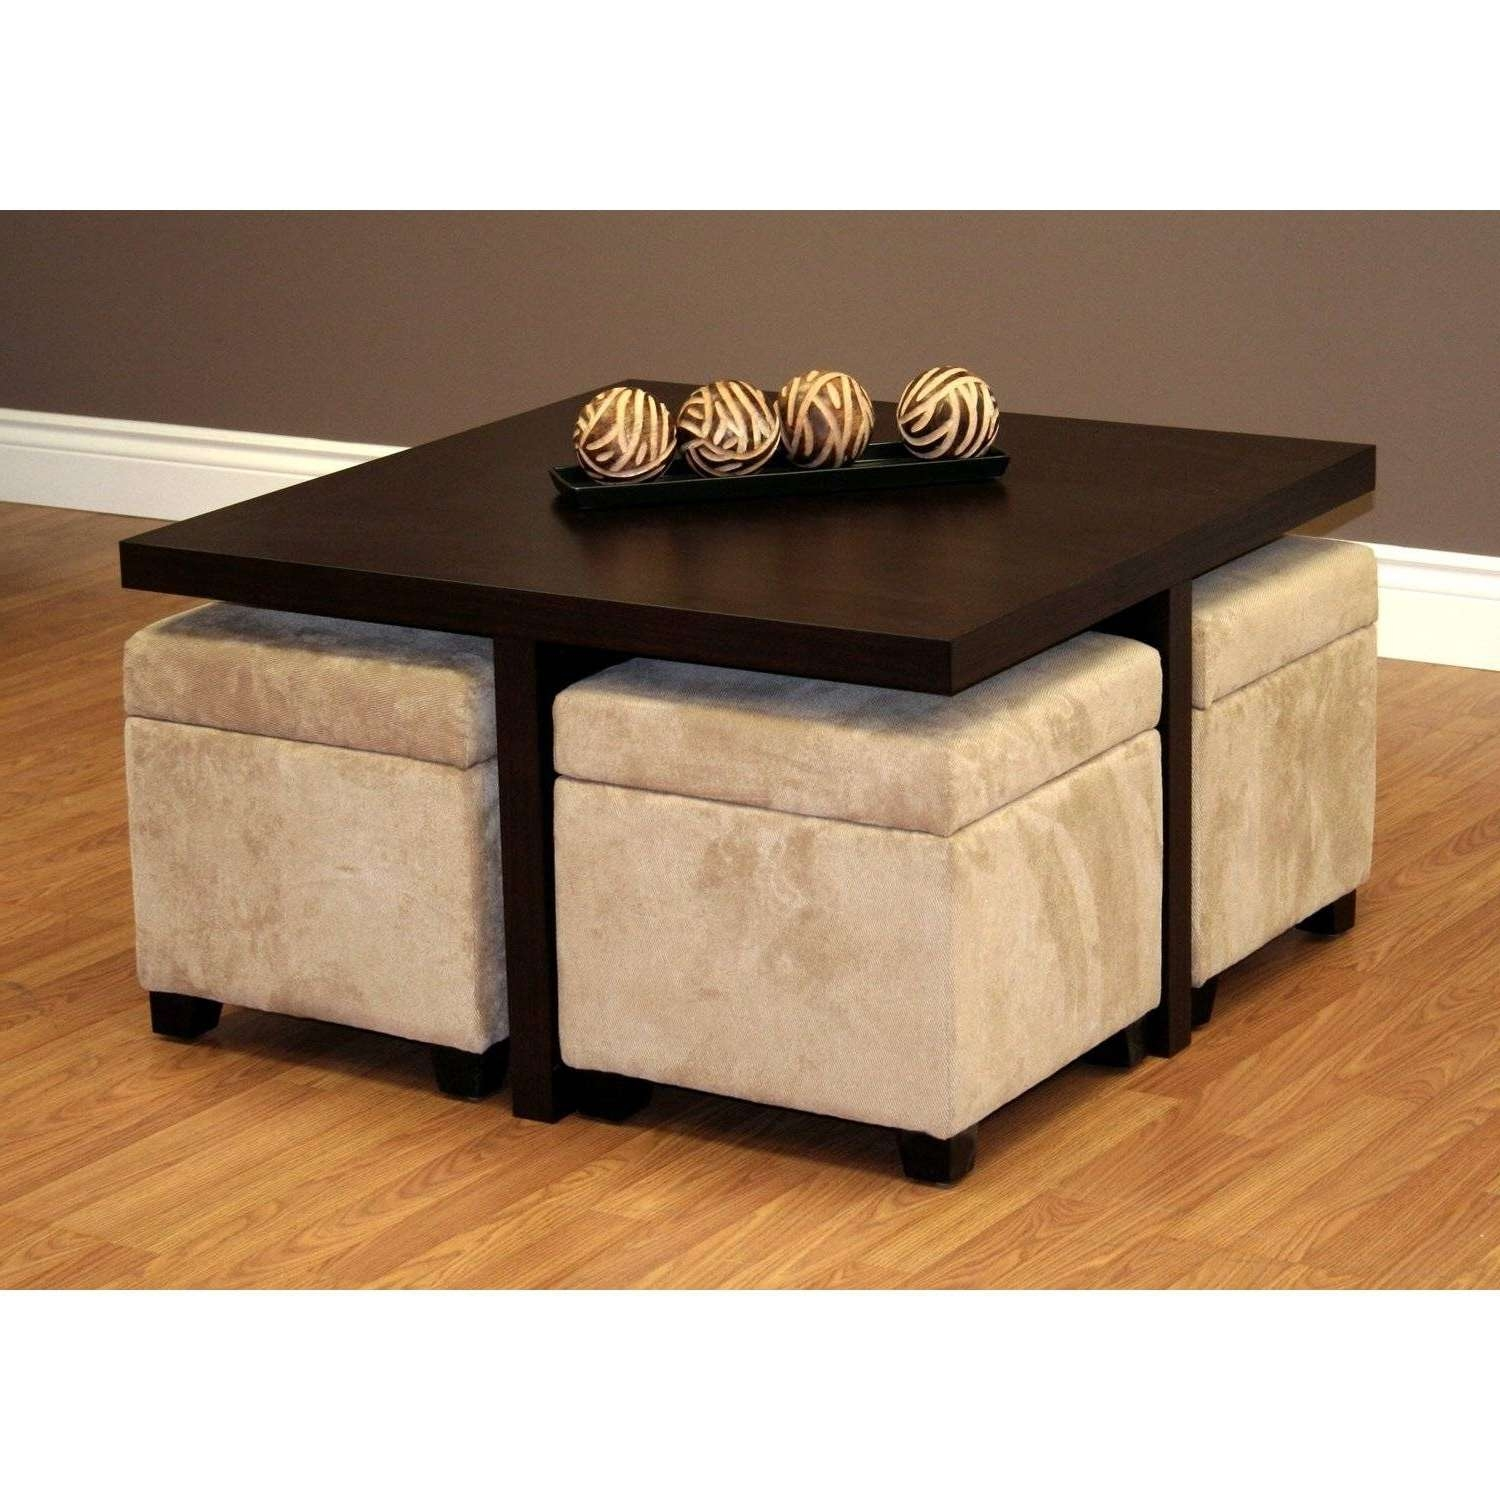 Kanson Coffee Table Storage Cubes • Coffee Table Ideas Within Favorite Square Coffee Tables With Storages (View 8 of 20)